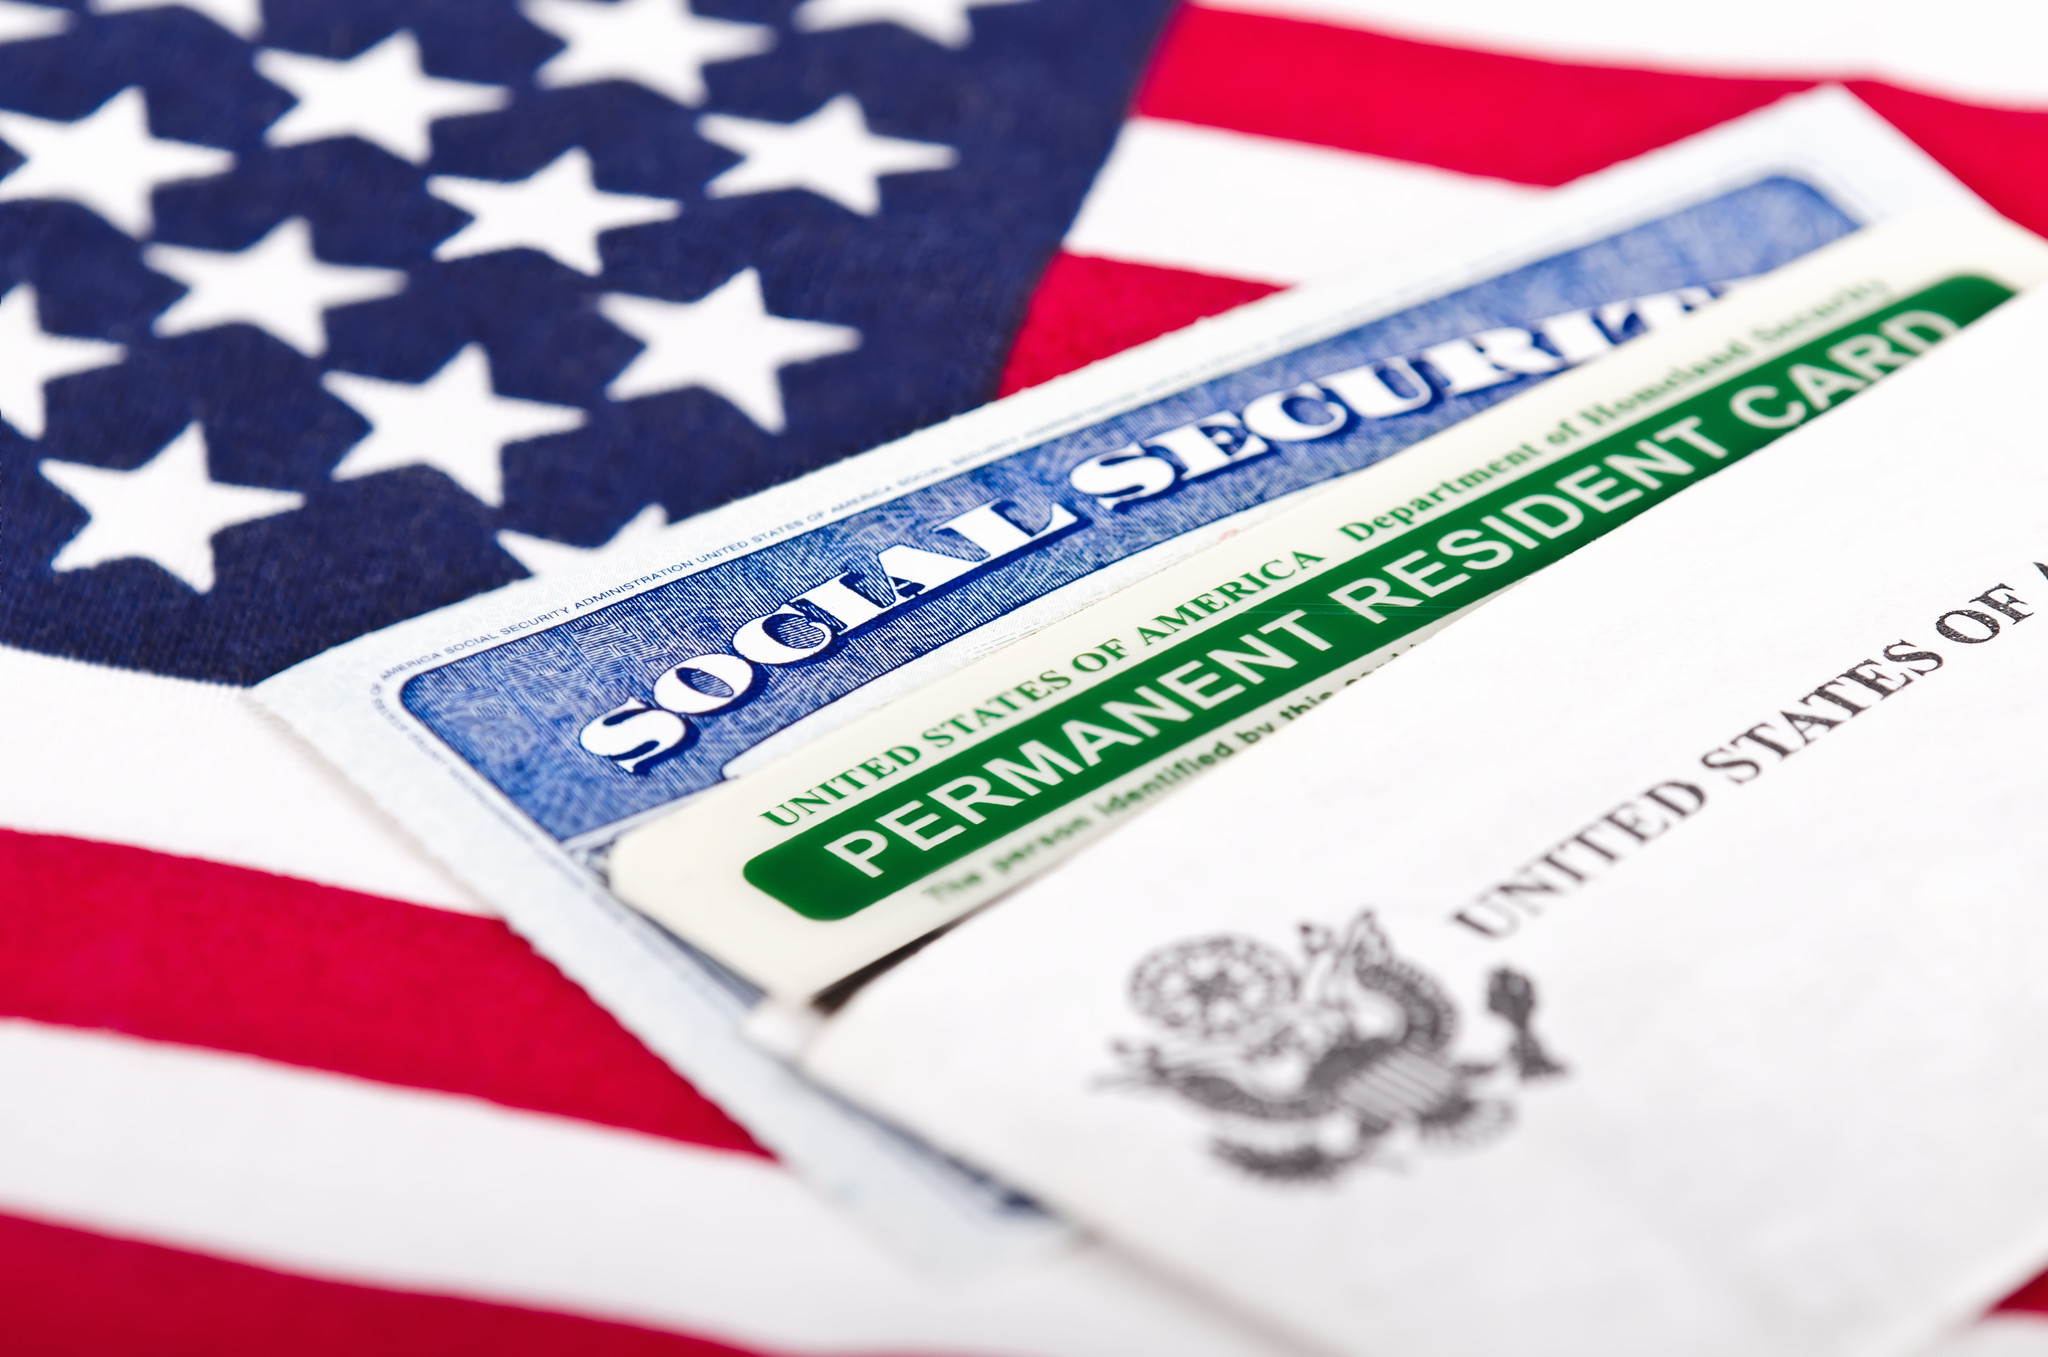 ALLAN WERNICK: Stepparents can petition for their stepkids to get a green card